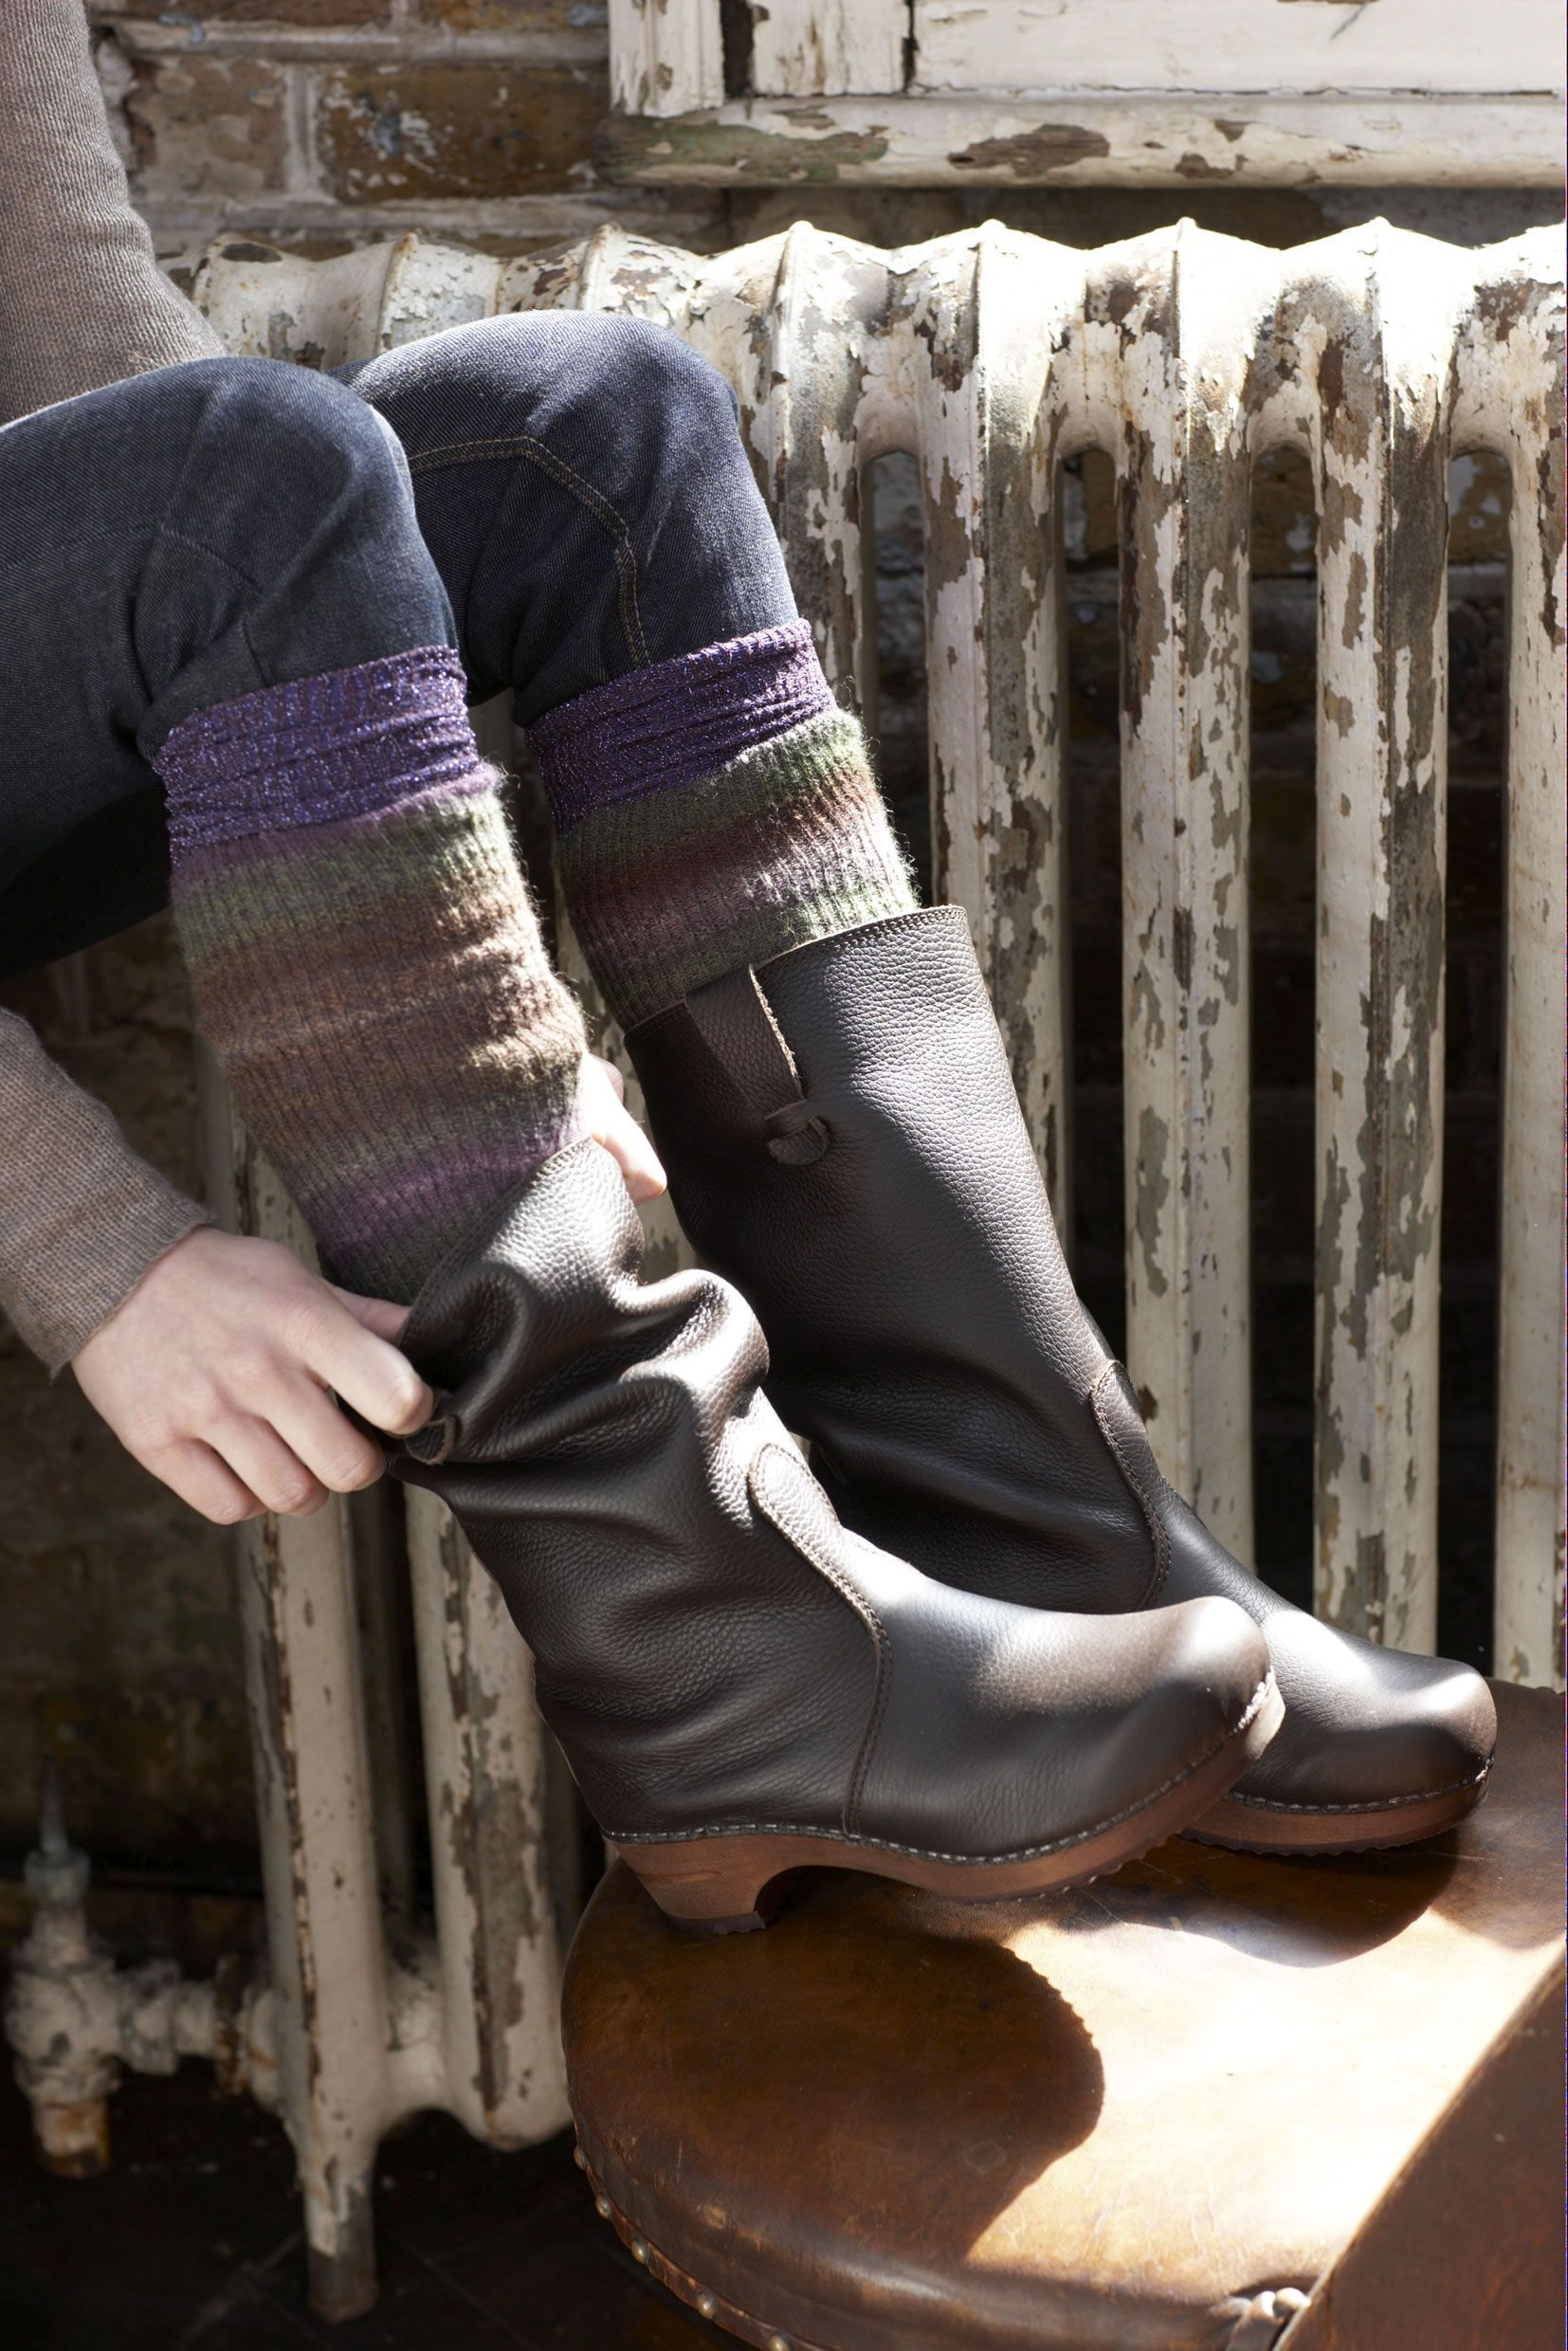 Swedish Clog Boots-I am on a mission to find this kind of clog boot